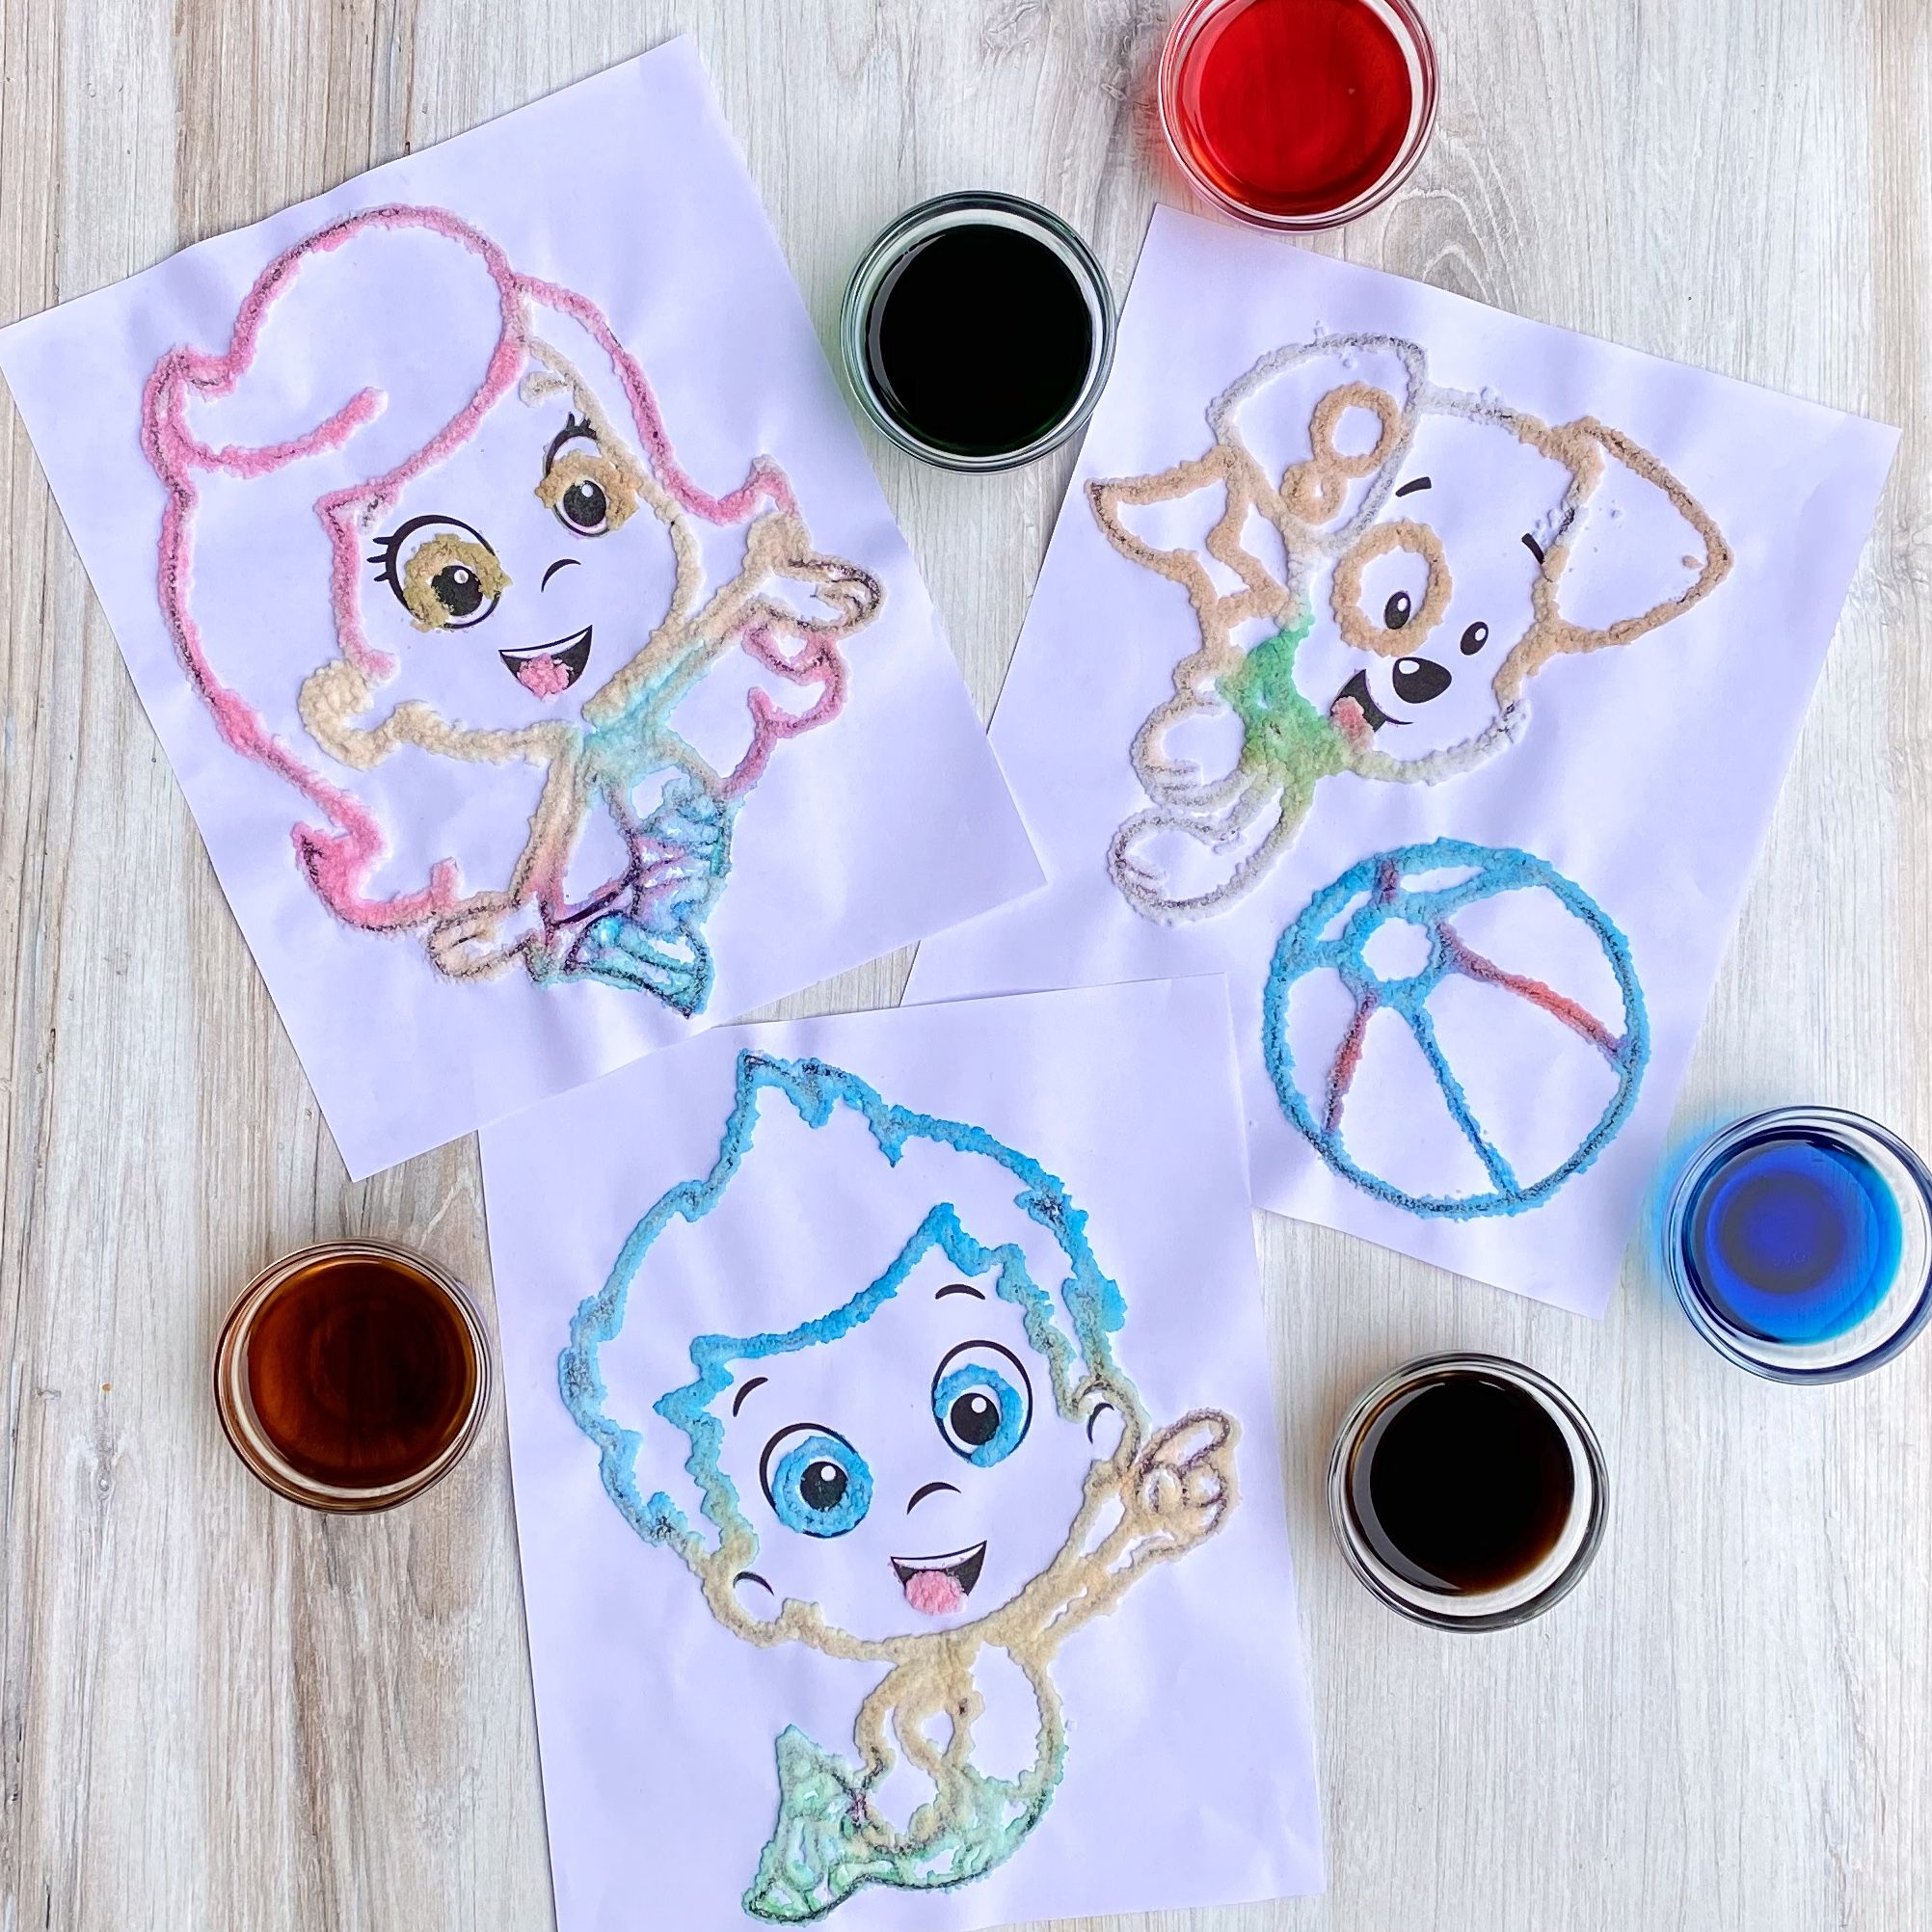 Salt Painting with the Bubble Guppies in 2020 Salt